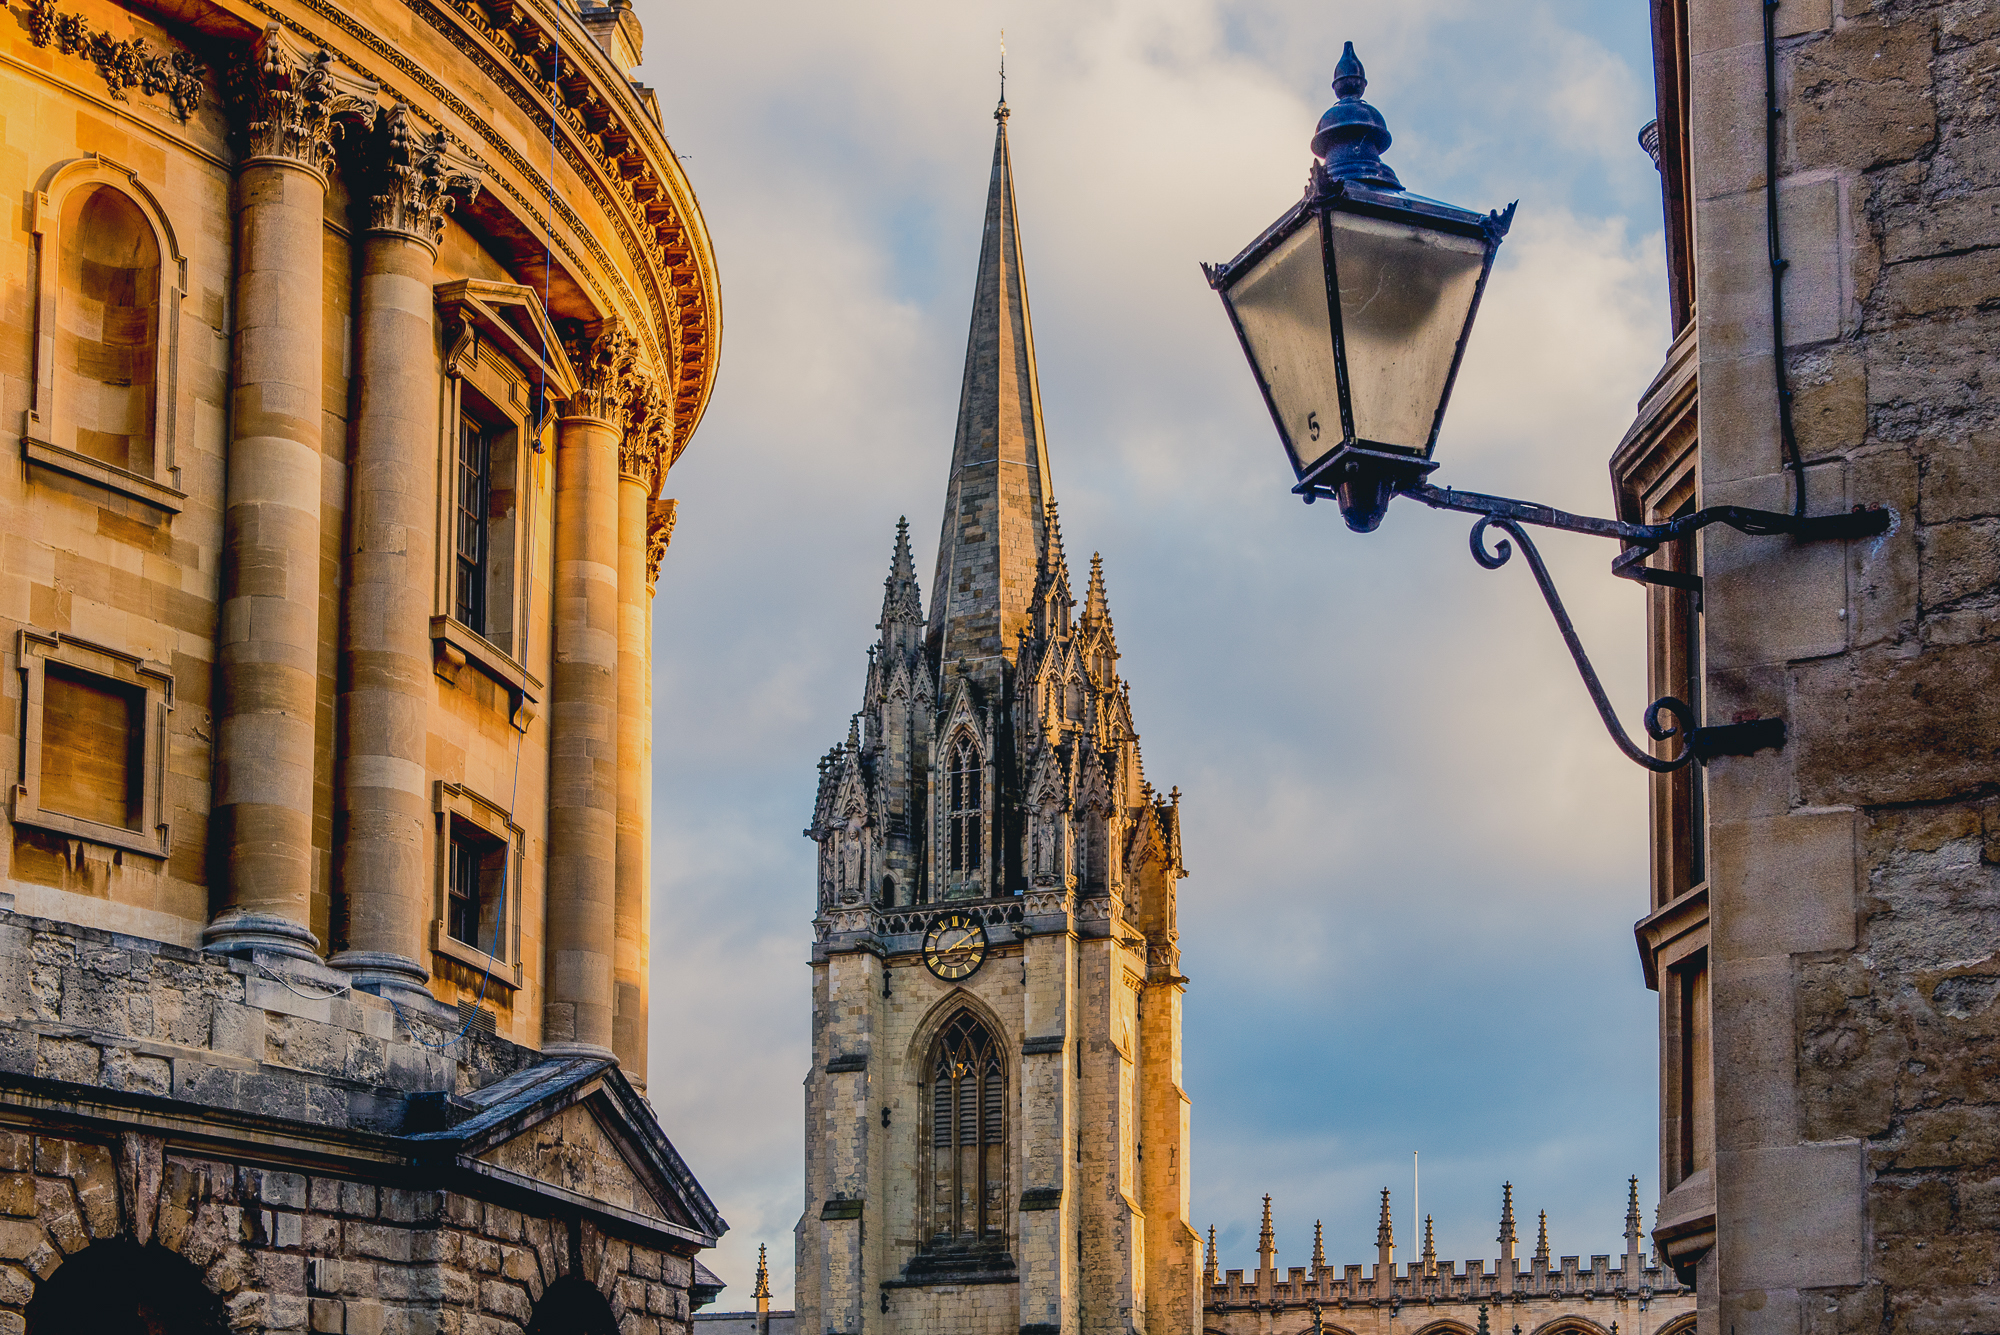 A view of the side of the Radcliffe Camera